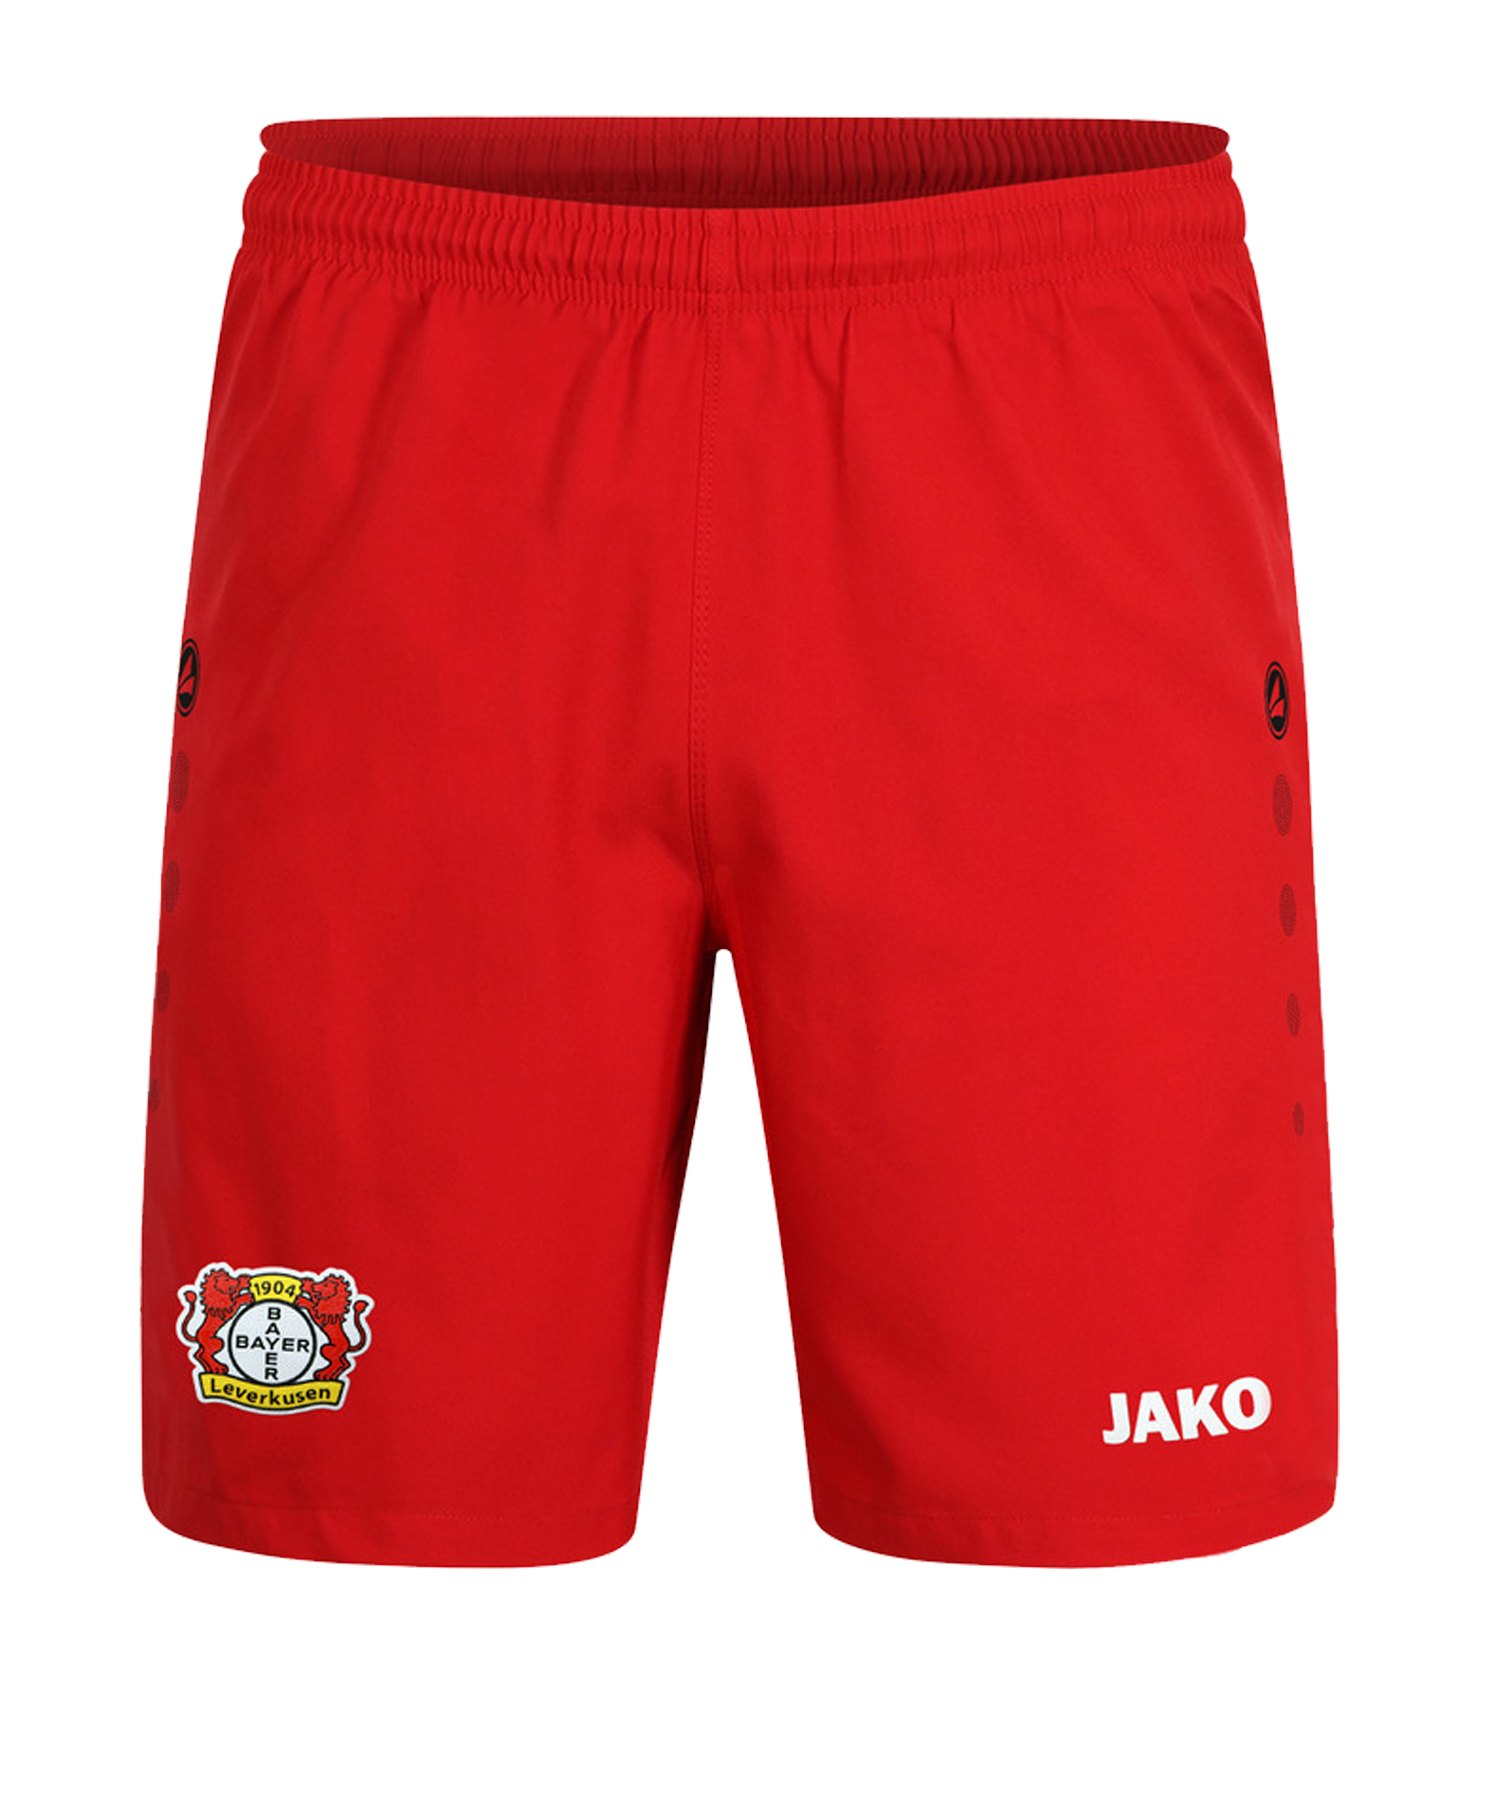 Jako Bayer 04 Leverkusen Short Home 2019/2020 Kids Rot F01 - rot